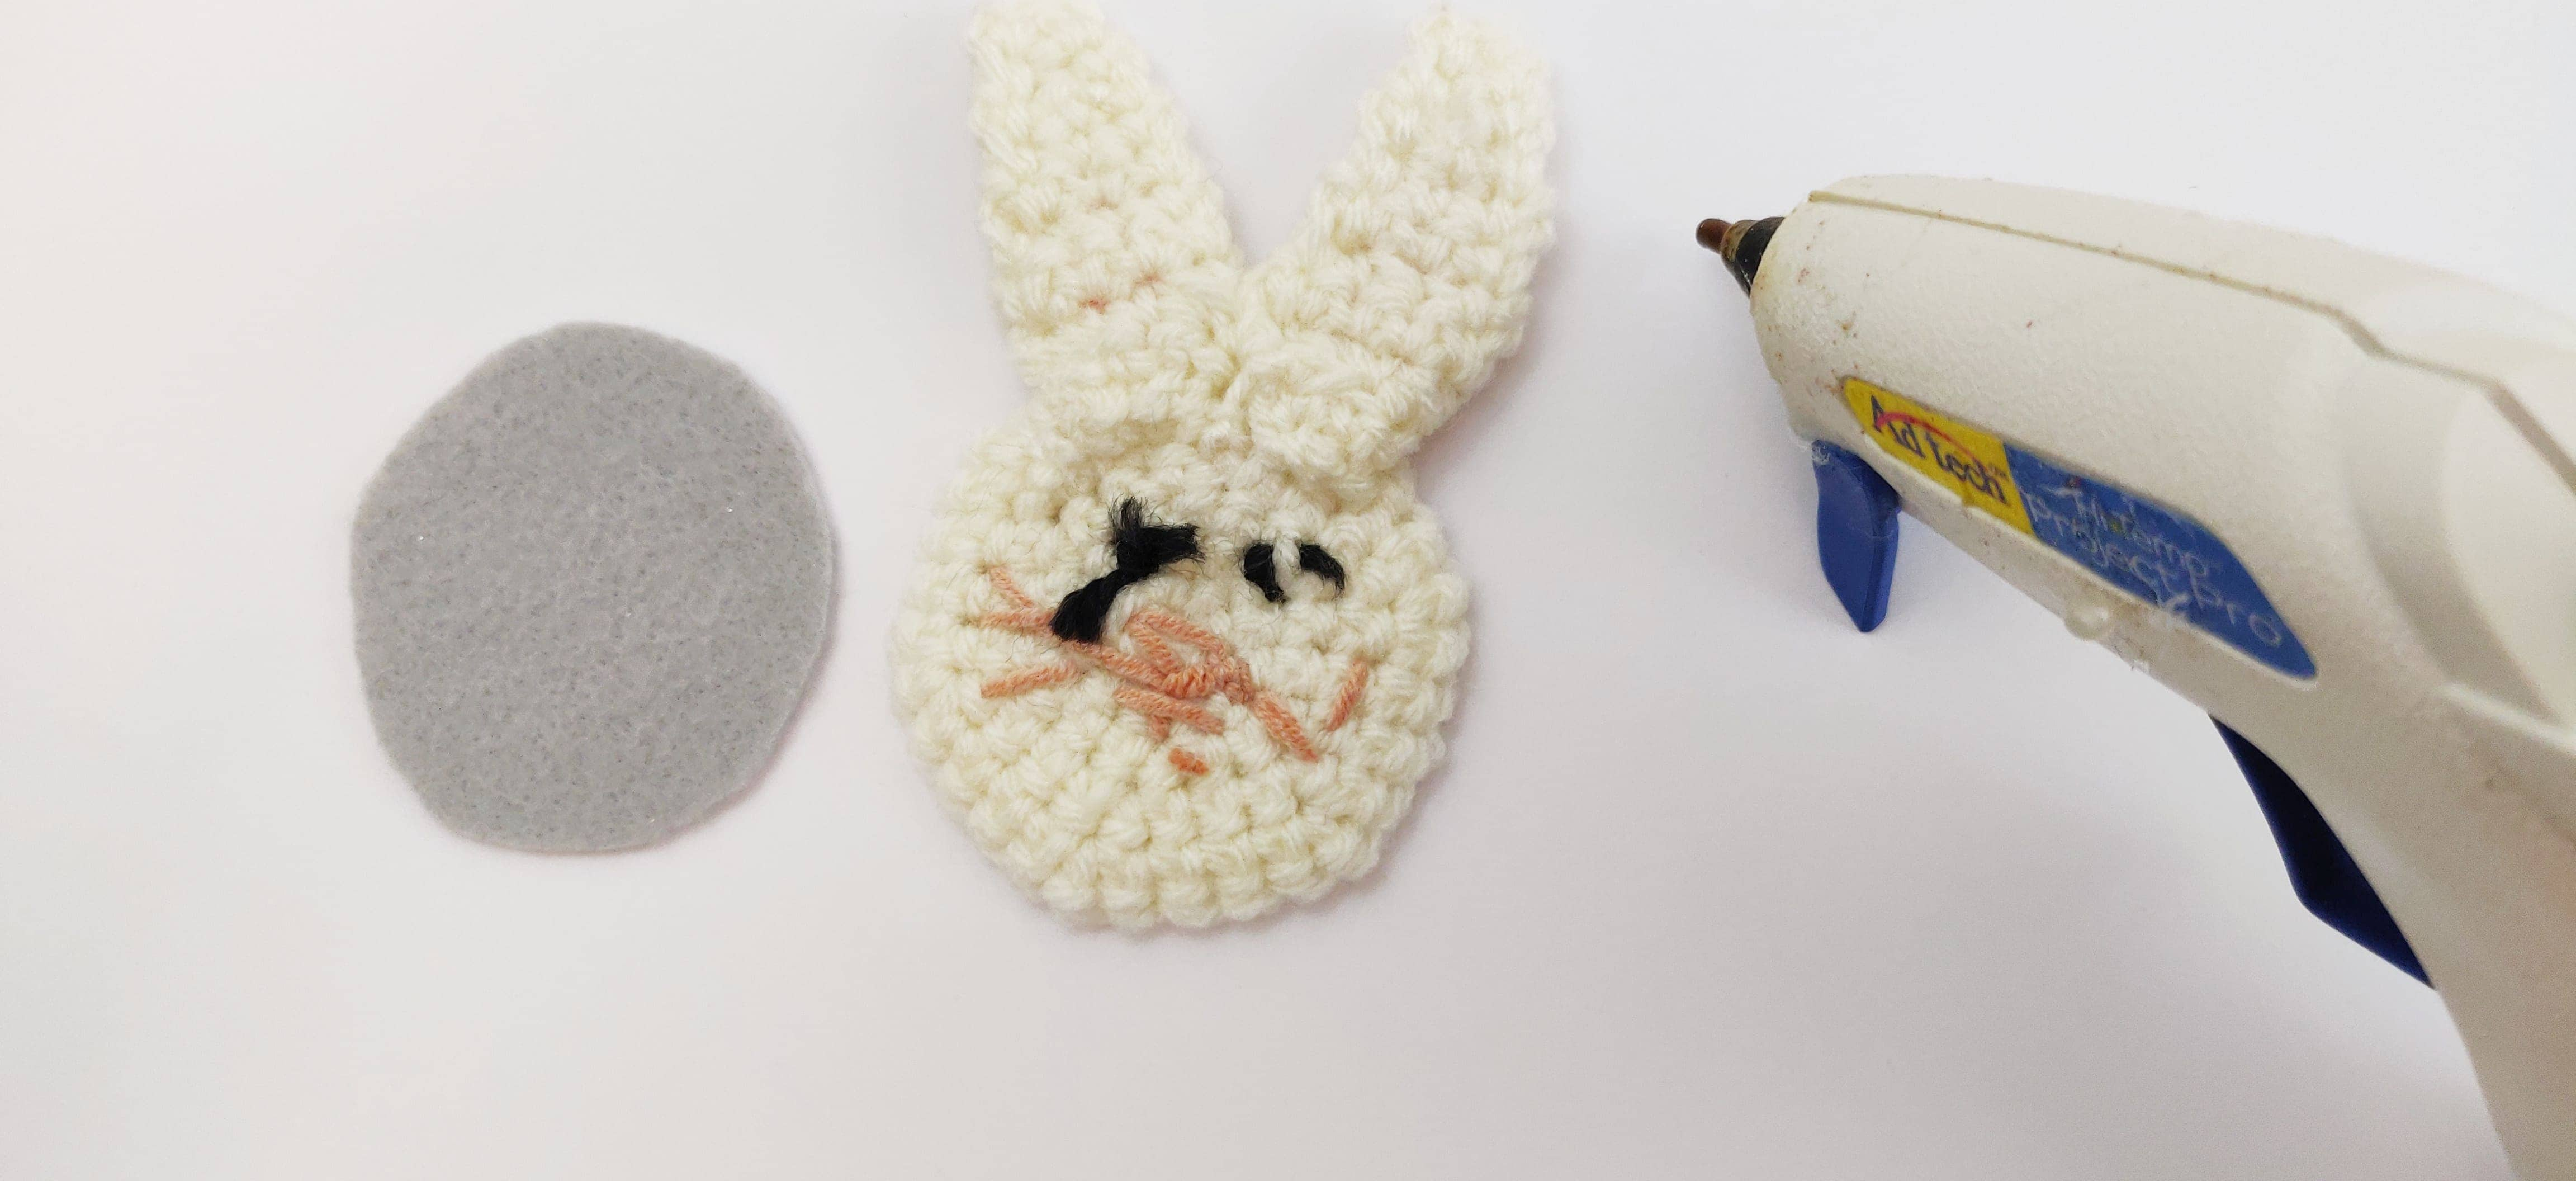 Unassembled crochet bunny applique next to some synthetic backing material and a hot glue gun.